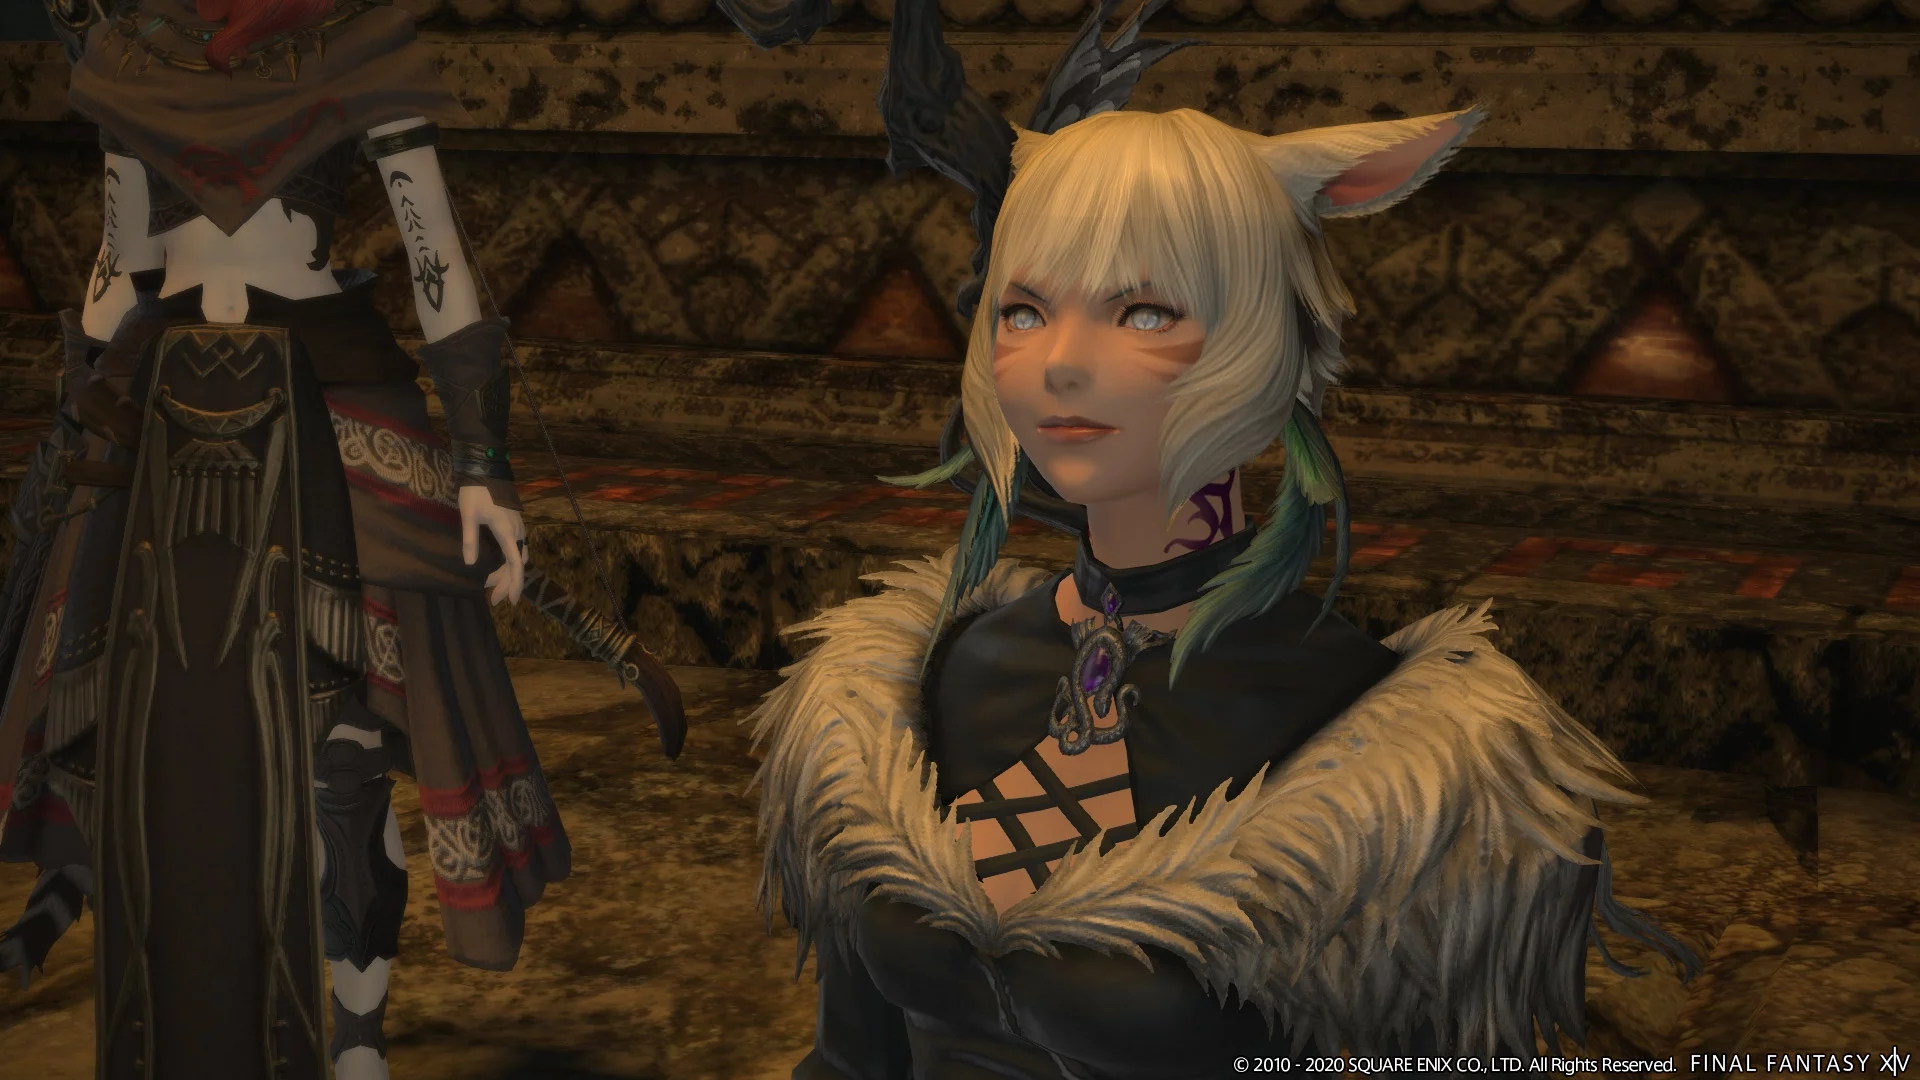 A Realm Reborn, echoes of a fallen star, Final Fantasy XIV, Final Fantasy XIV: A Real Reborn, Final Fantasy XIV: Shadowbringers, final-fantasy-14, Naoki Yoshida, PC, PS3, PS4, Shadowbringers, Sony, Square Enix, Yoshi-P